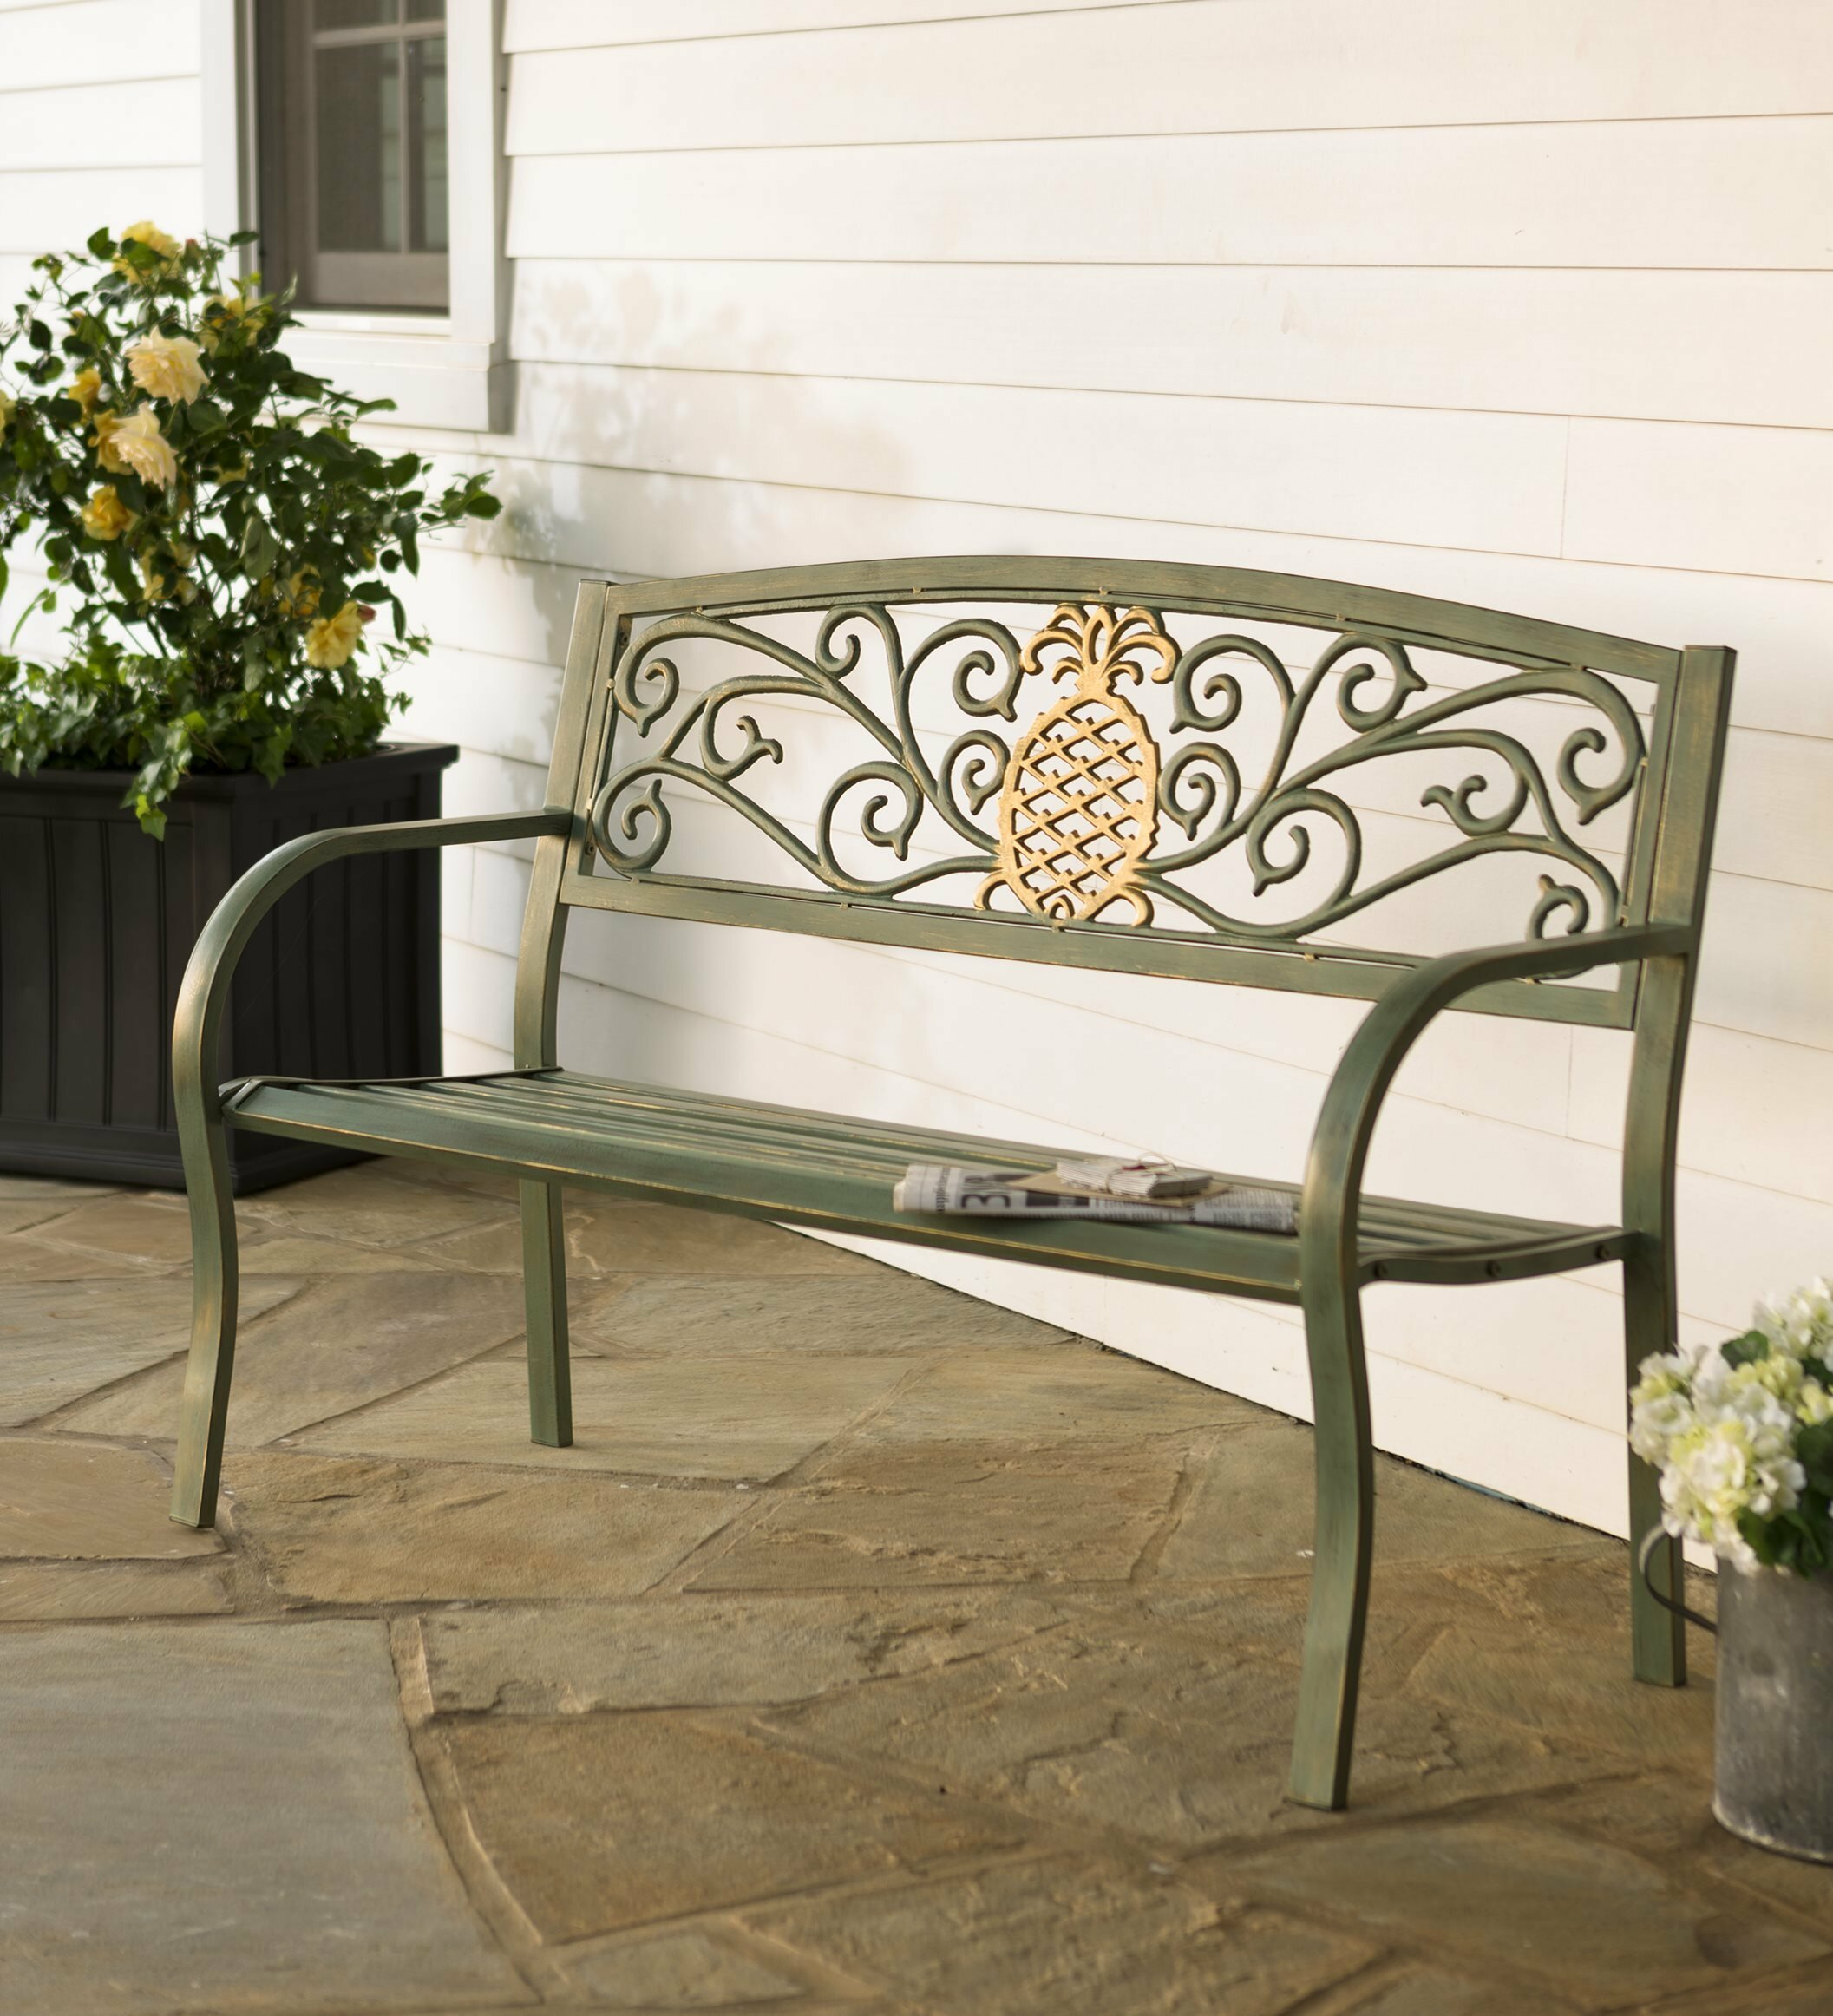 Featured Image of Krystal Ergonomic Metal Garden Benches